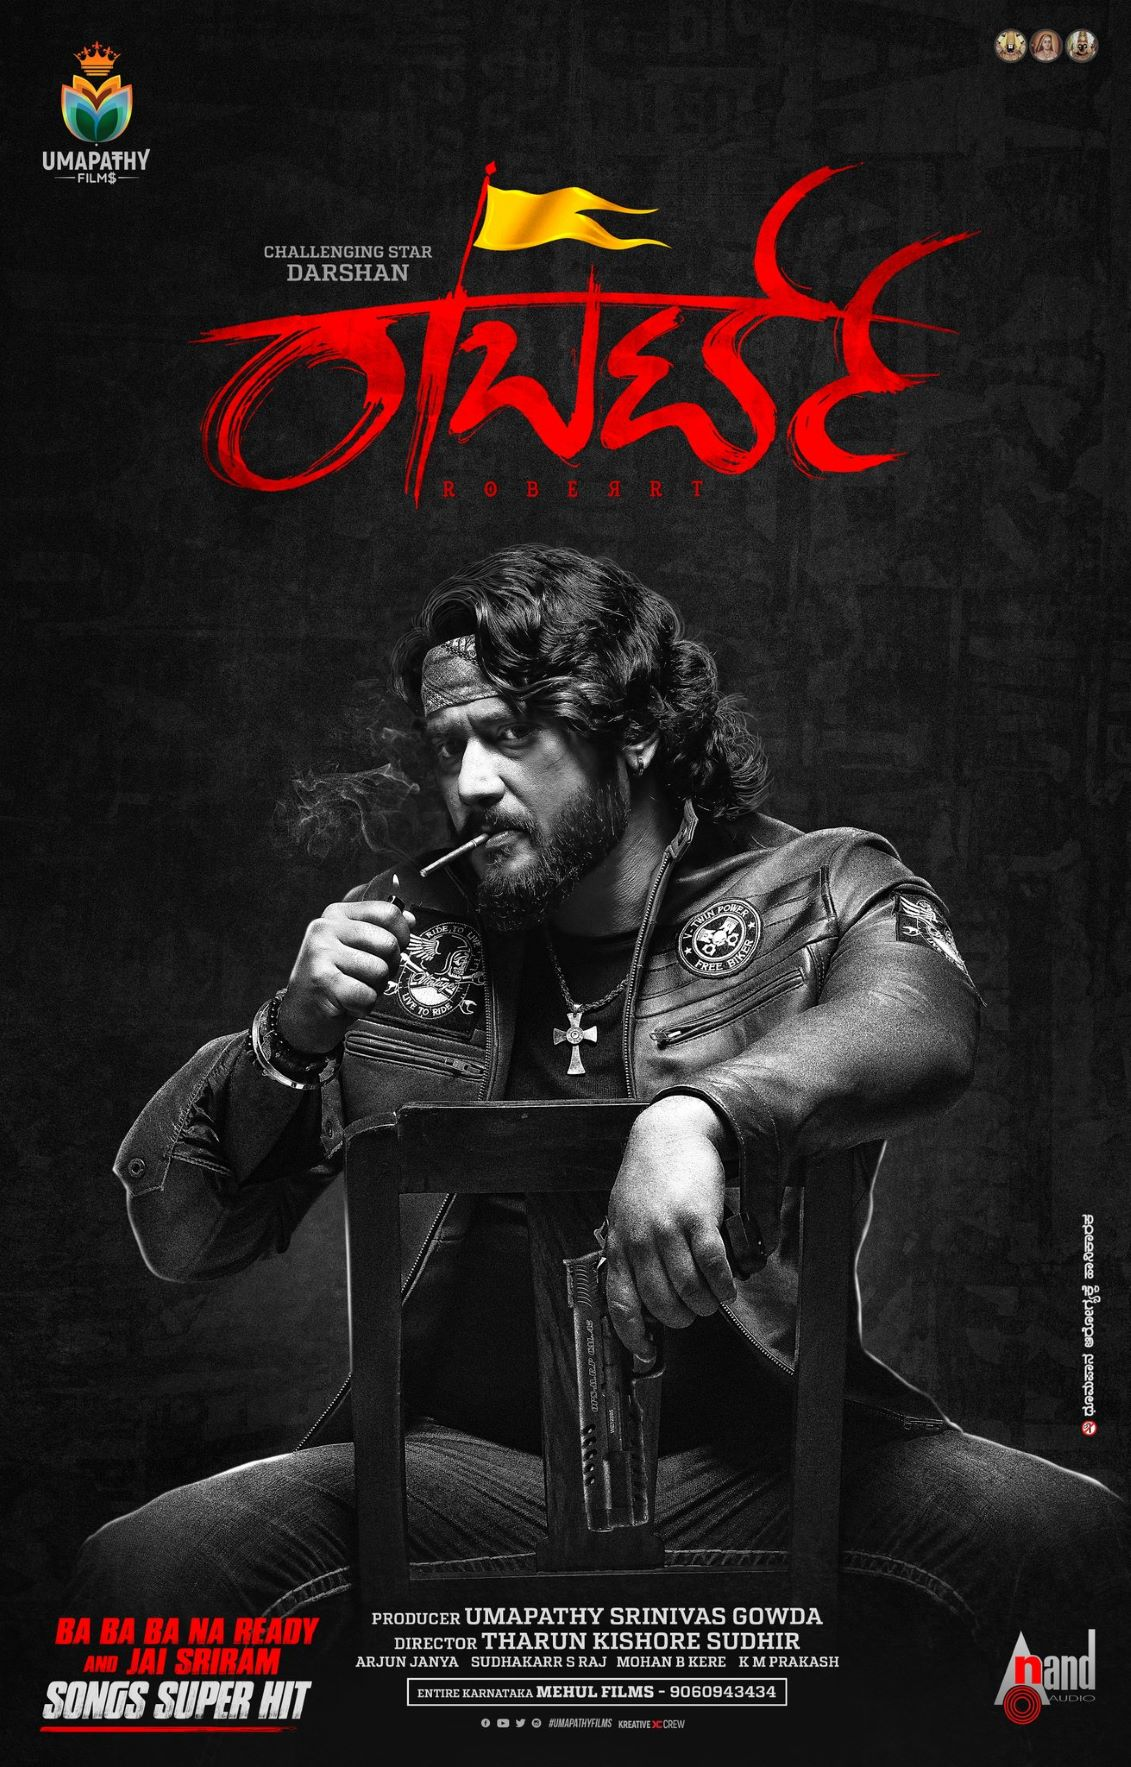 Roberrt Movie Posters | Picture 4